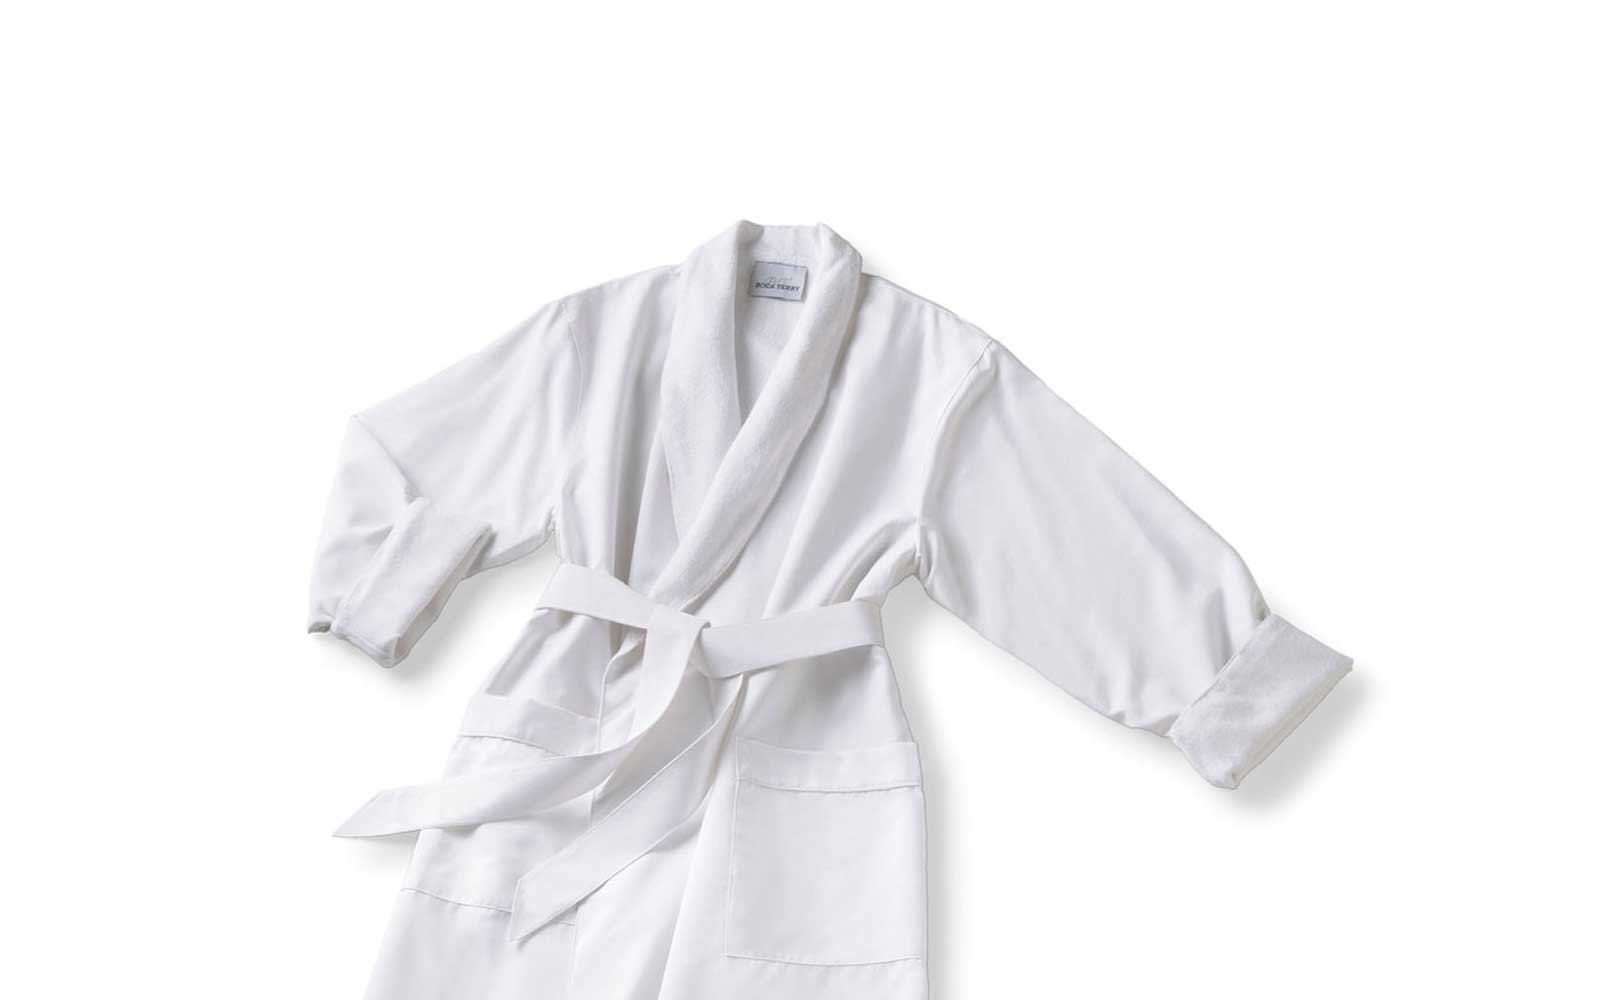 14 Luxury Hotel Quality Bathrobes You Can Buy Online